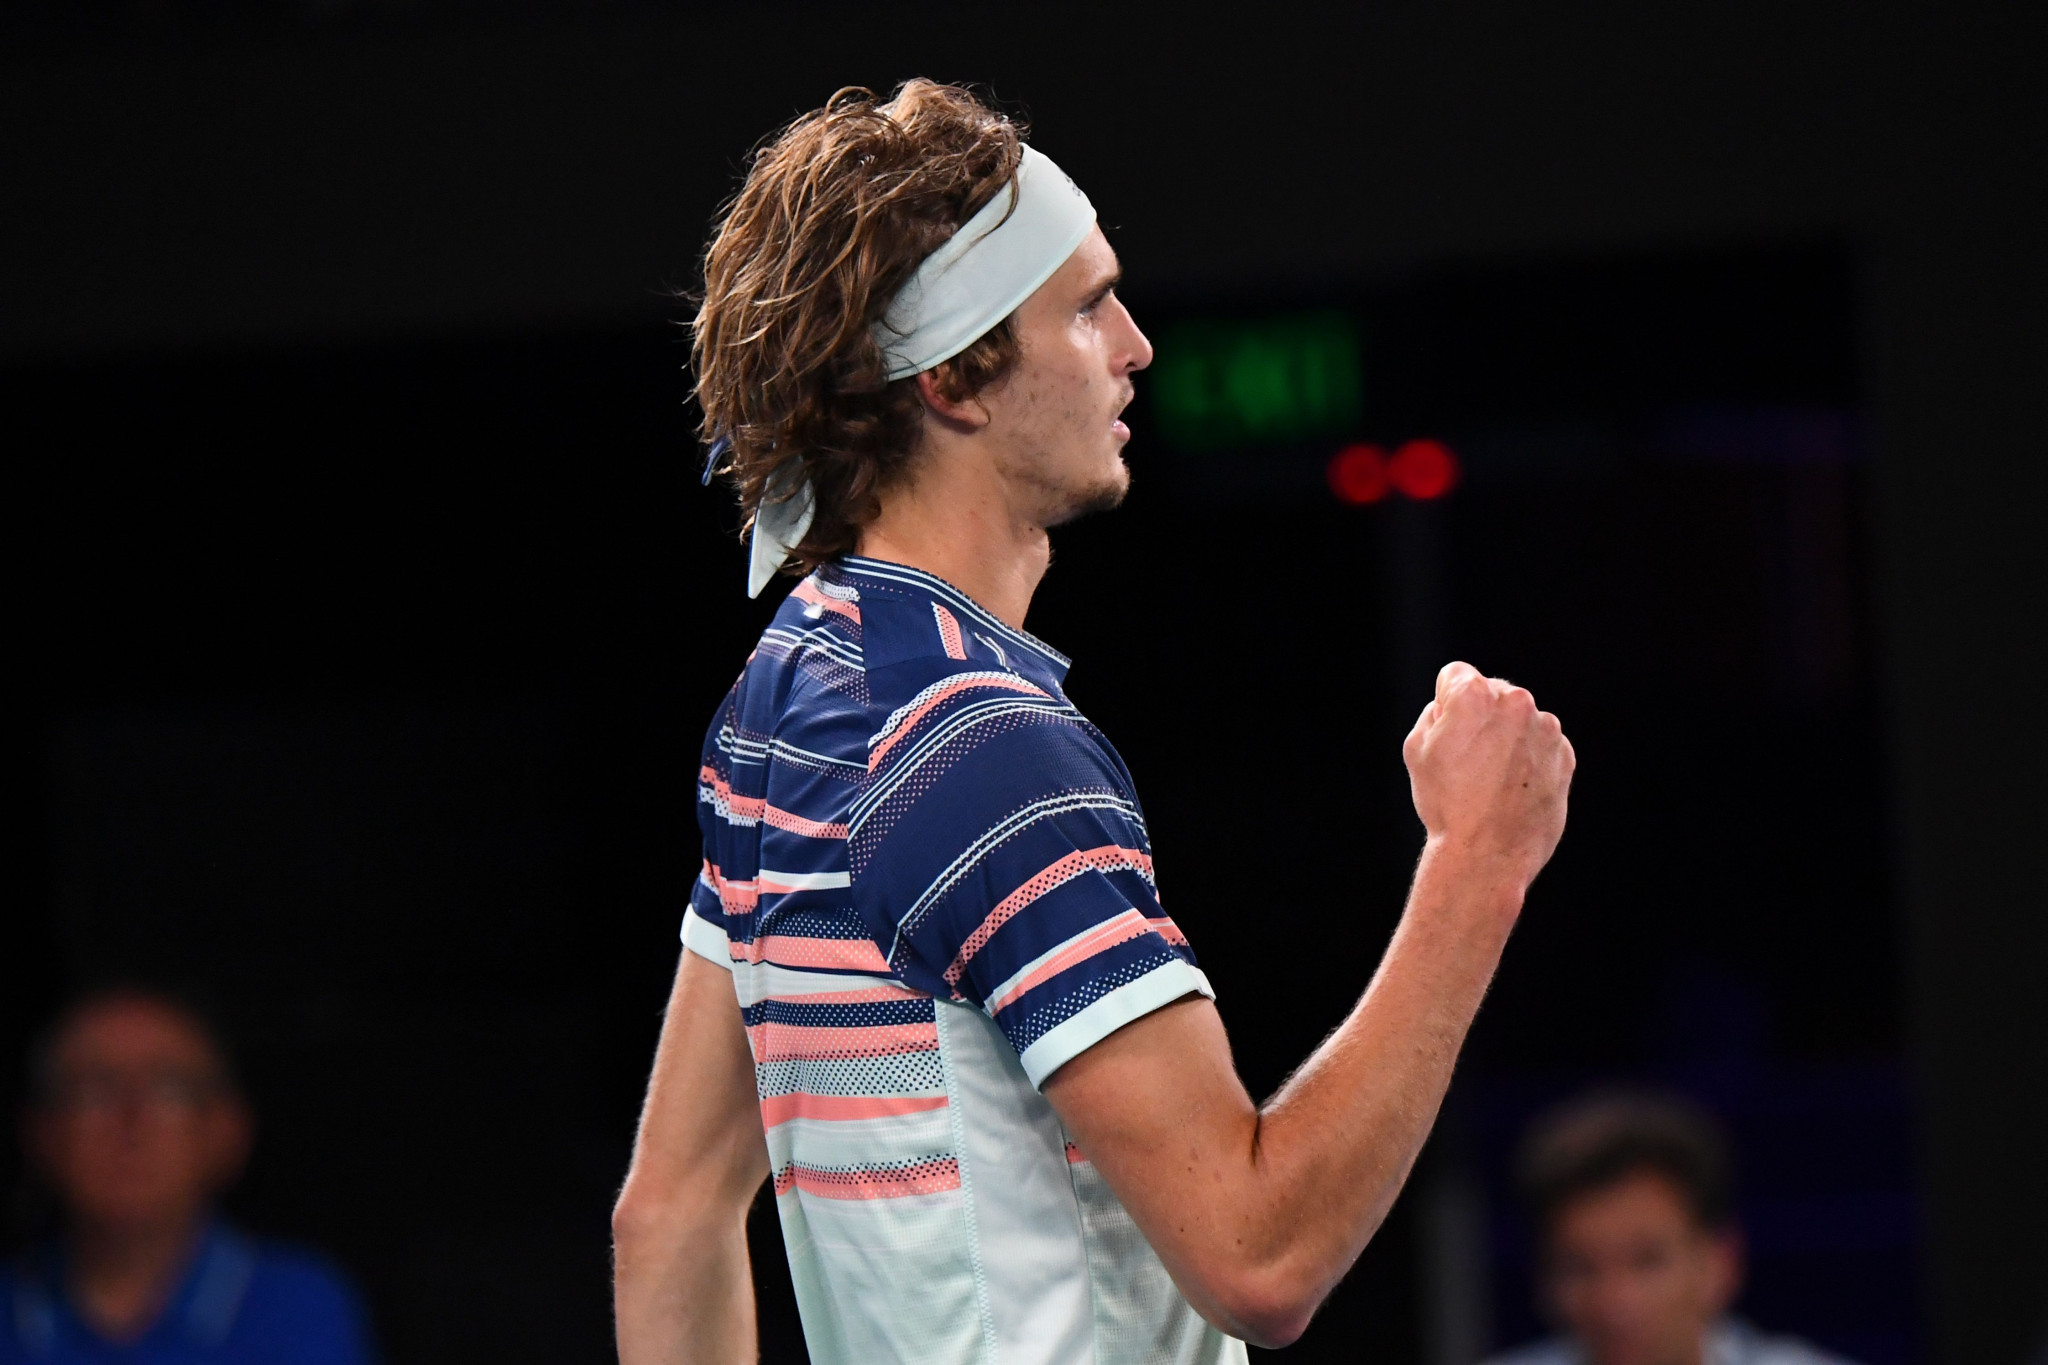 Germany's Alexander Zverev took the opening set of the semi-final tie ©Getty Images